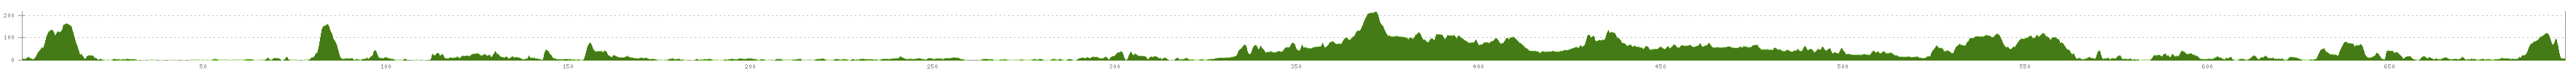 Elevation profile Cycle Tour Rundtour durch Kent, Sussex, Hampshire und Surrey